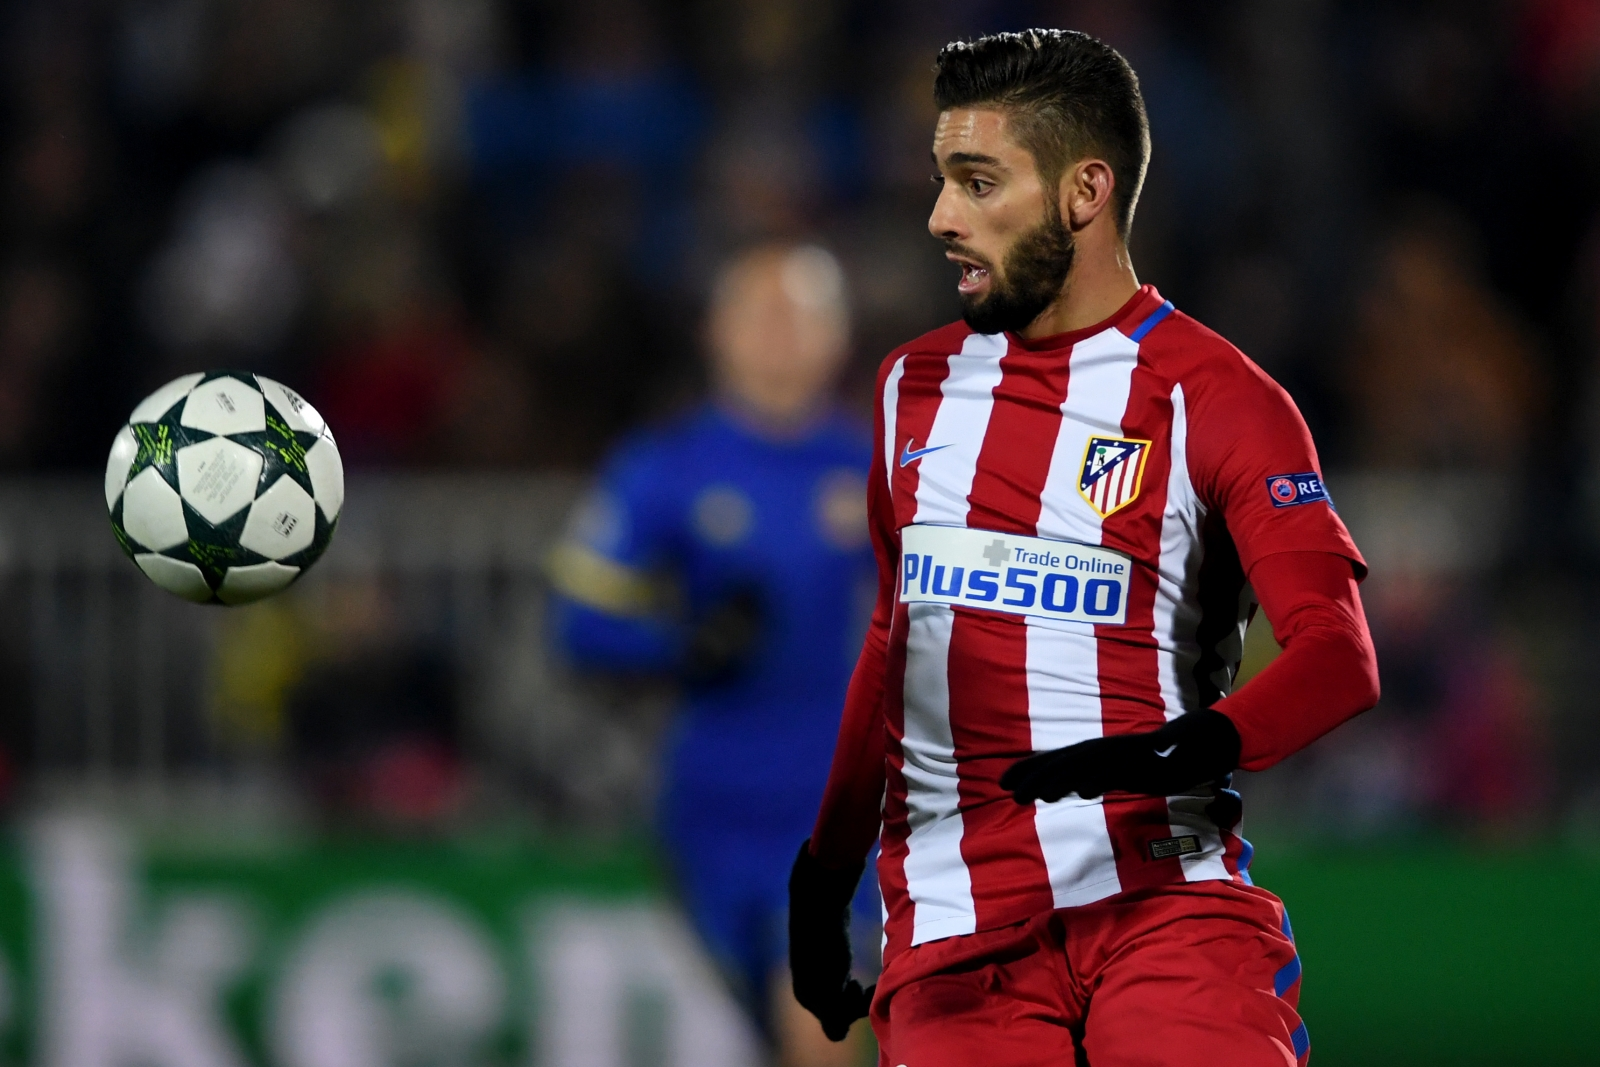 Yannick Carrasco signs new Atletico Madrid deal following Chelsea